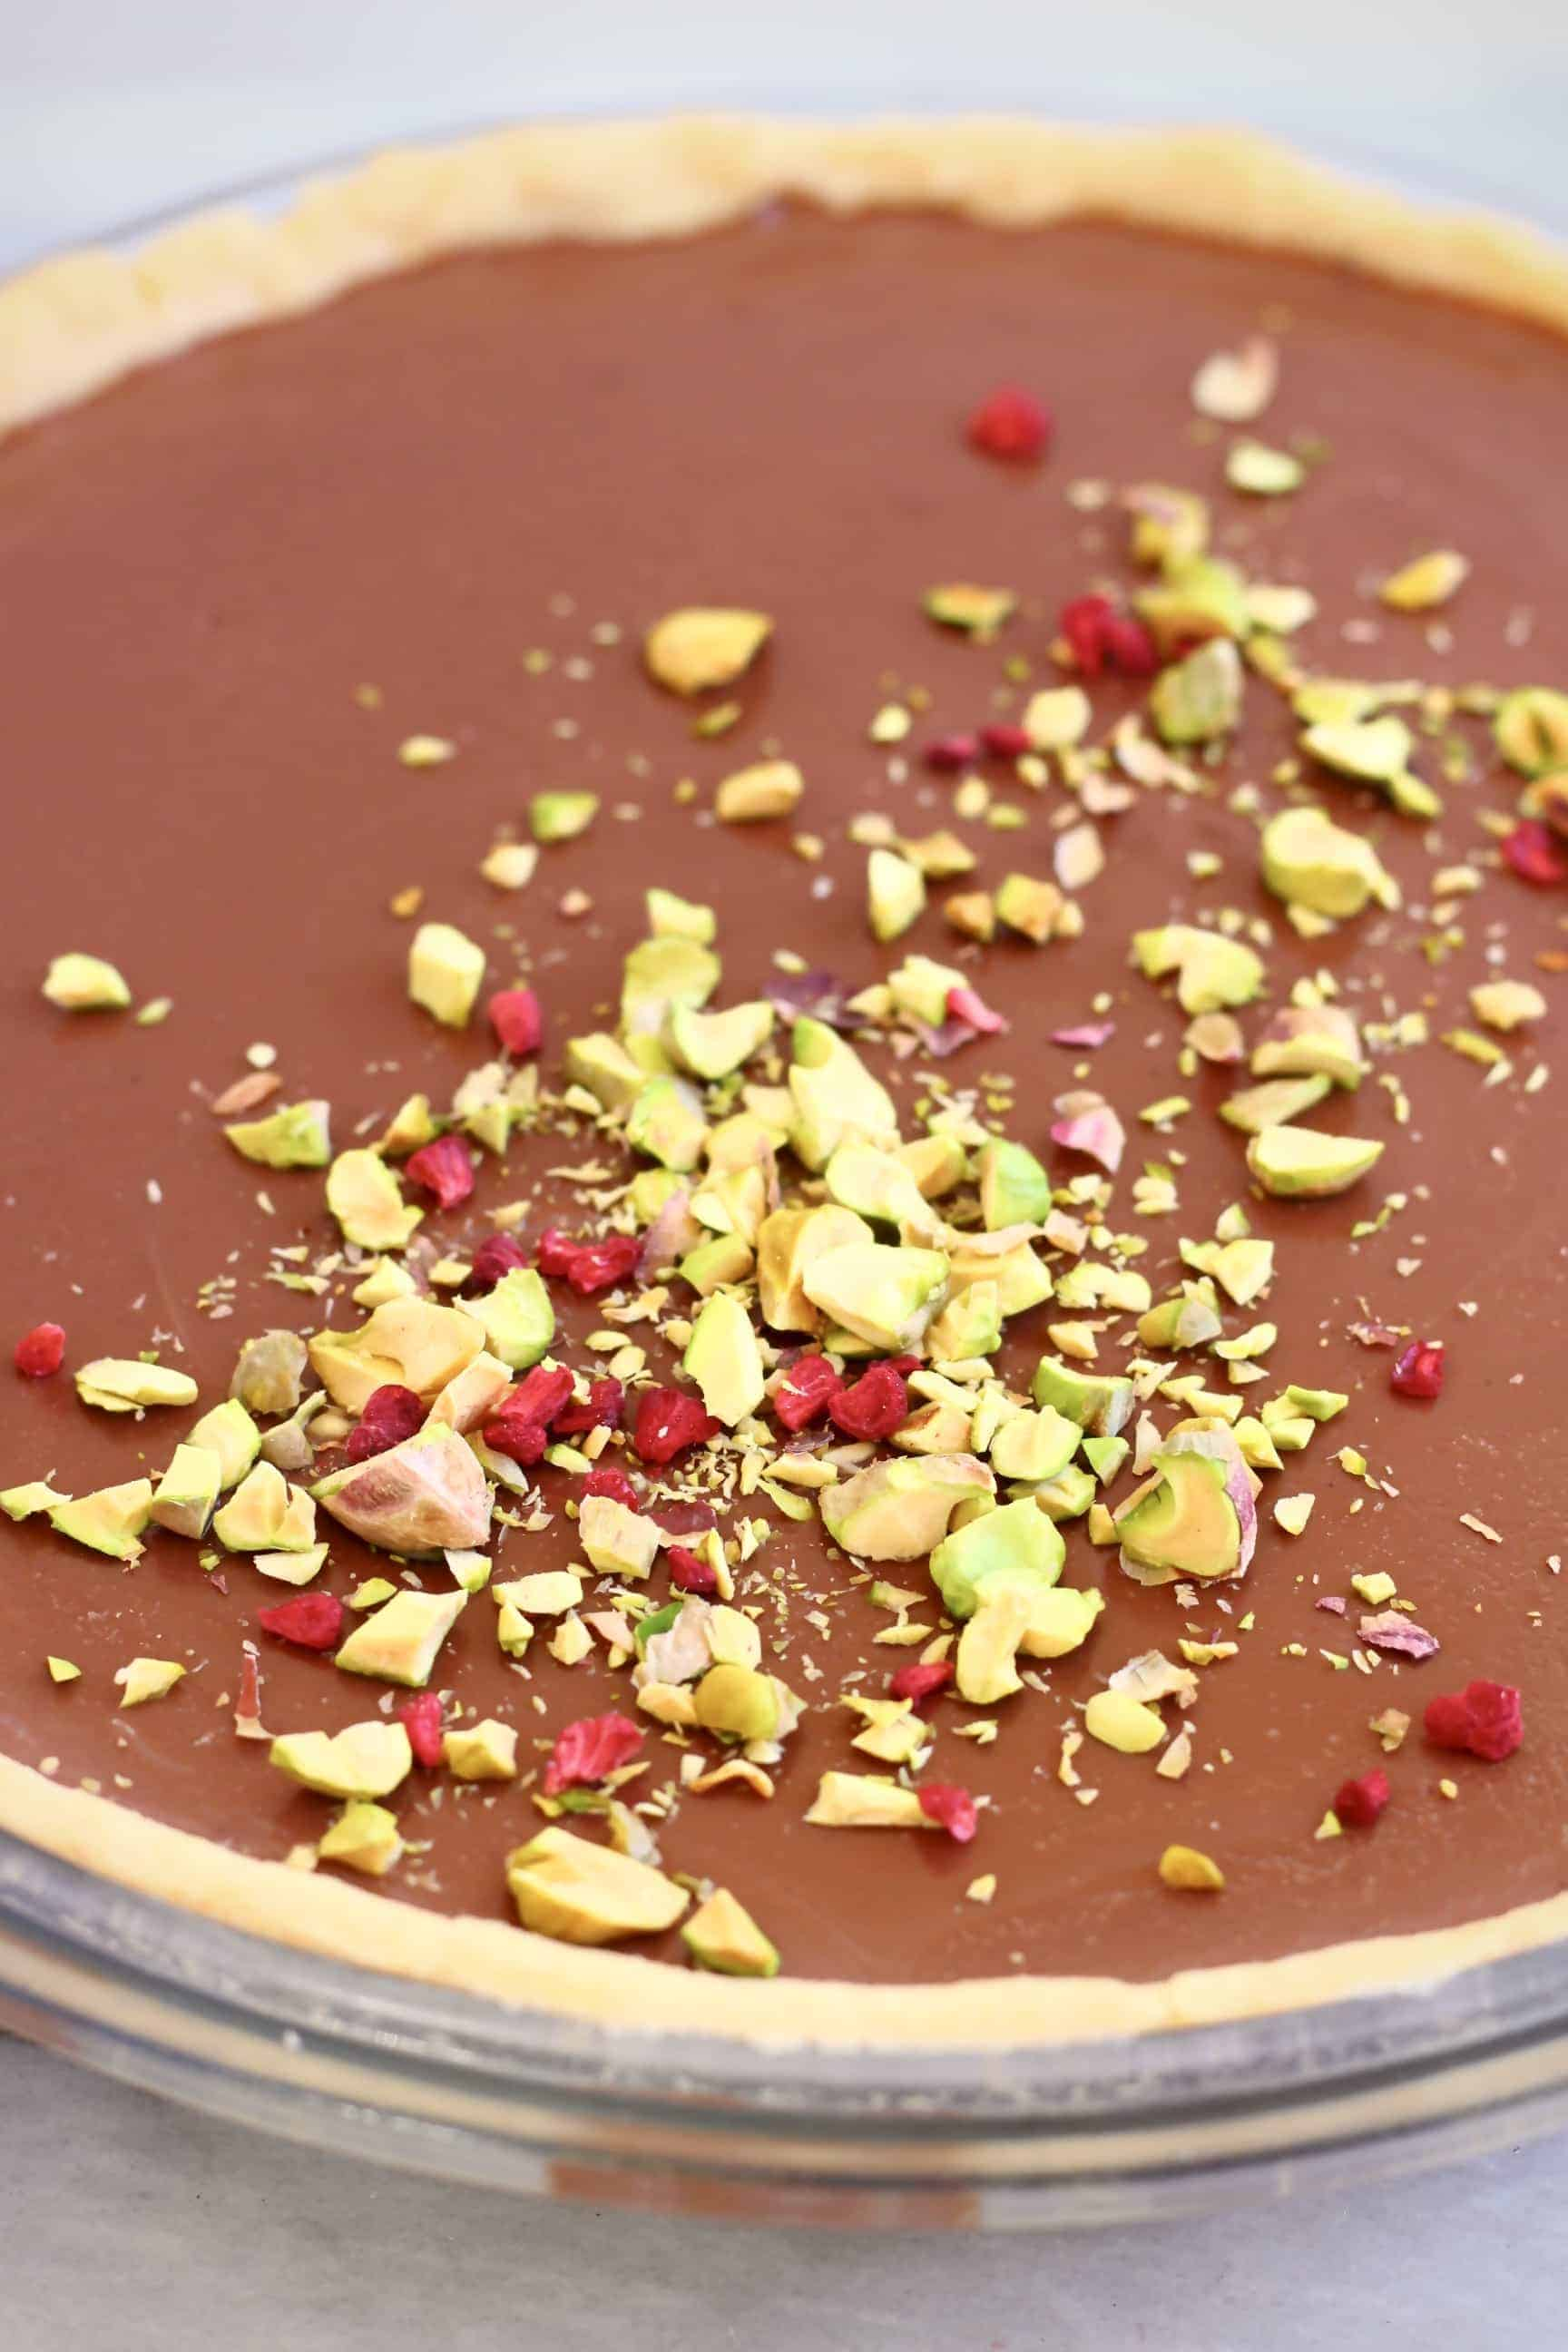 A gluten-free vegan chocolate tart in a pie dish topped with chopped pistachios and freeze-dried raspberries